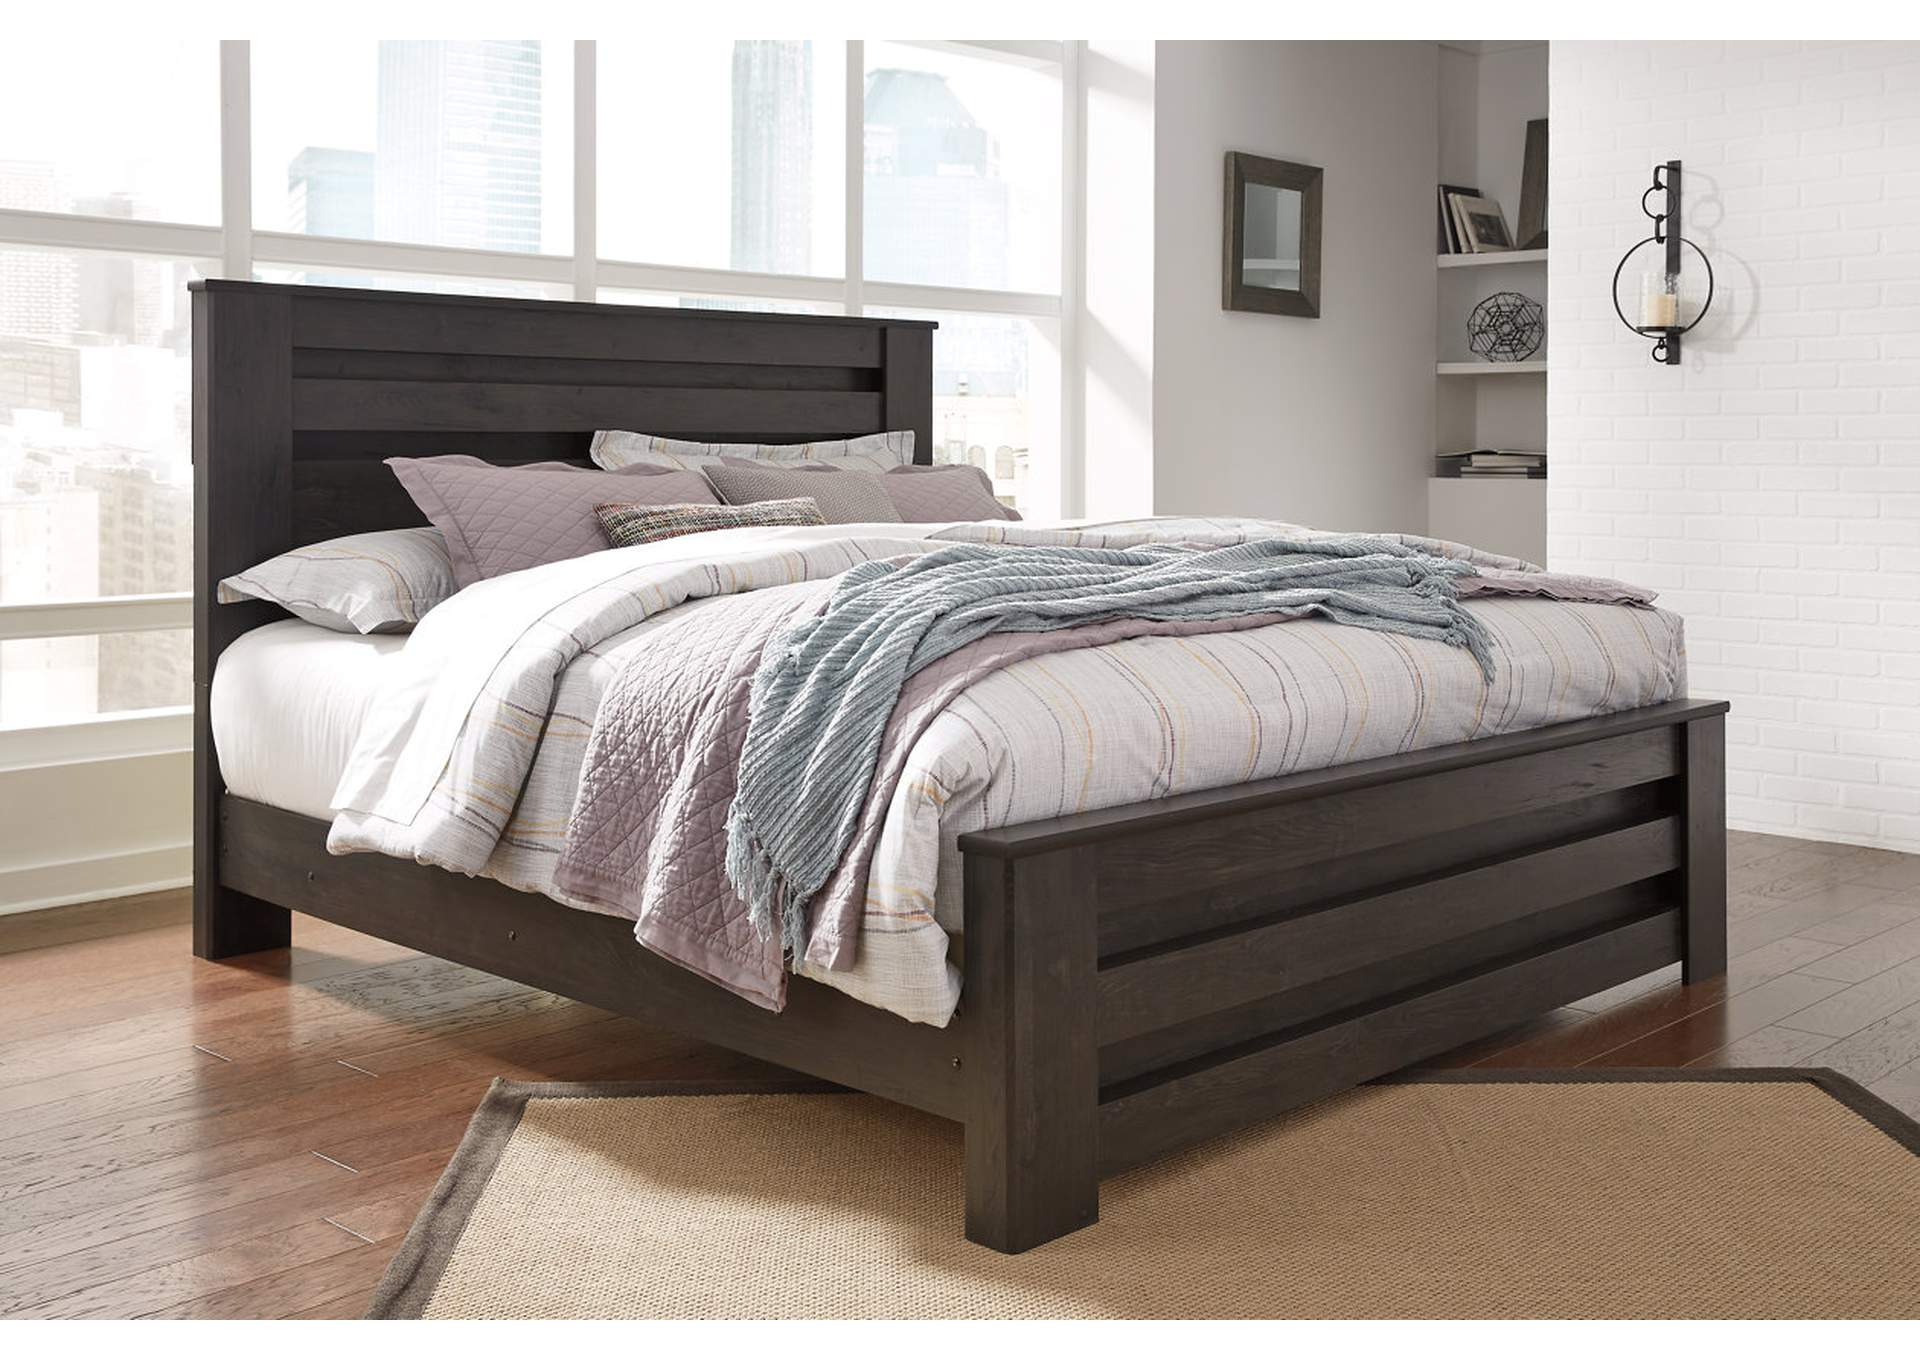 Brinxton Black Full Panel Bed,Signature Design By Ashley